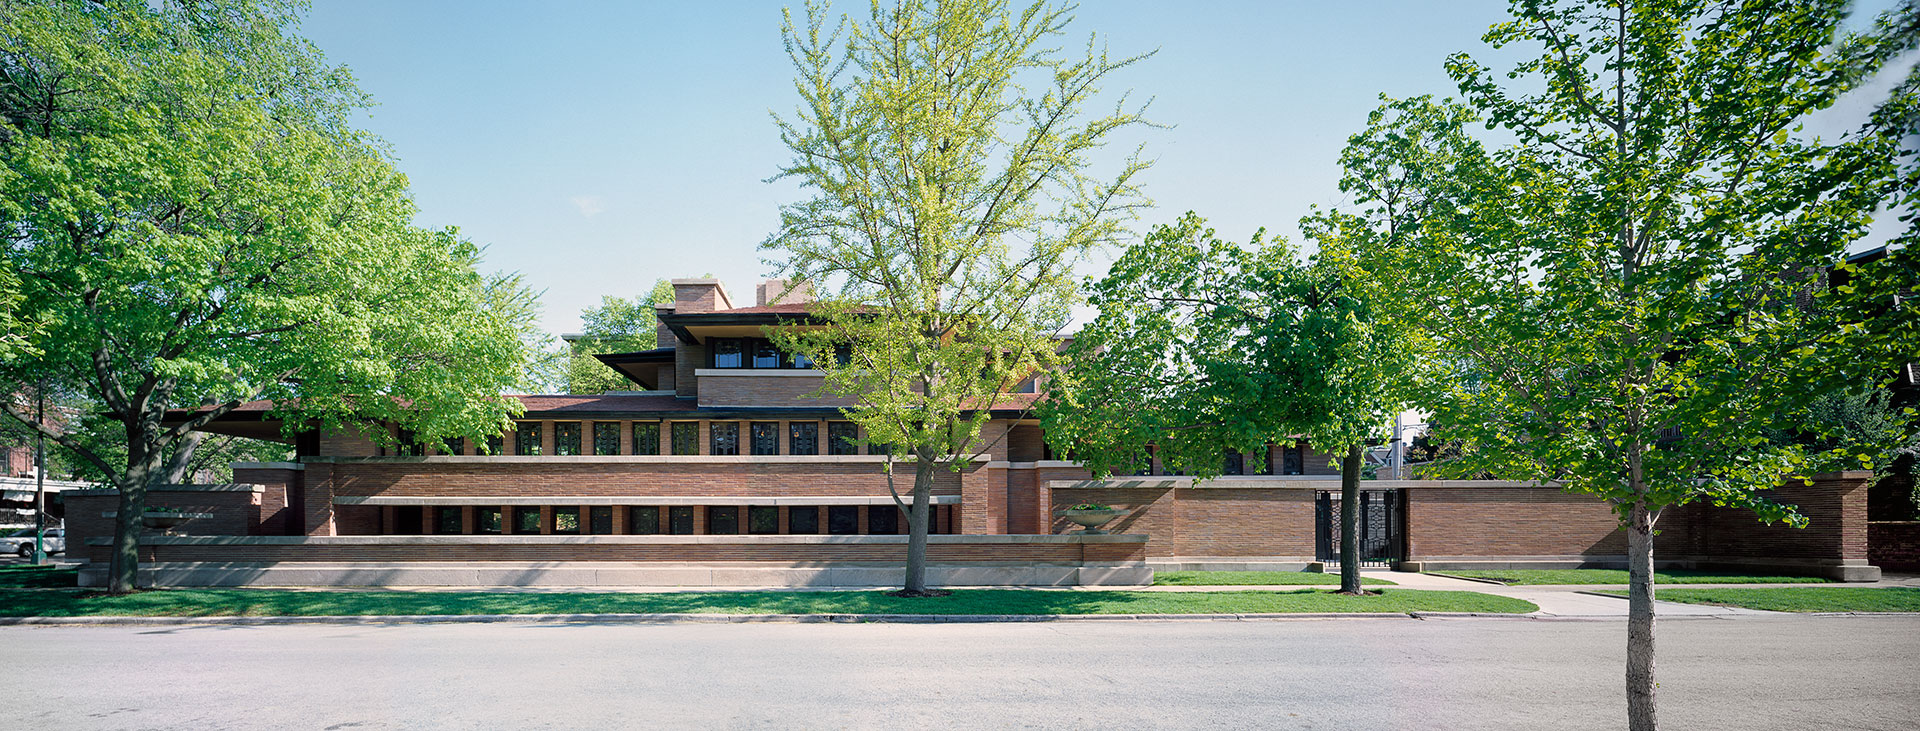 robie house teaching by design